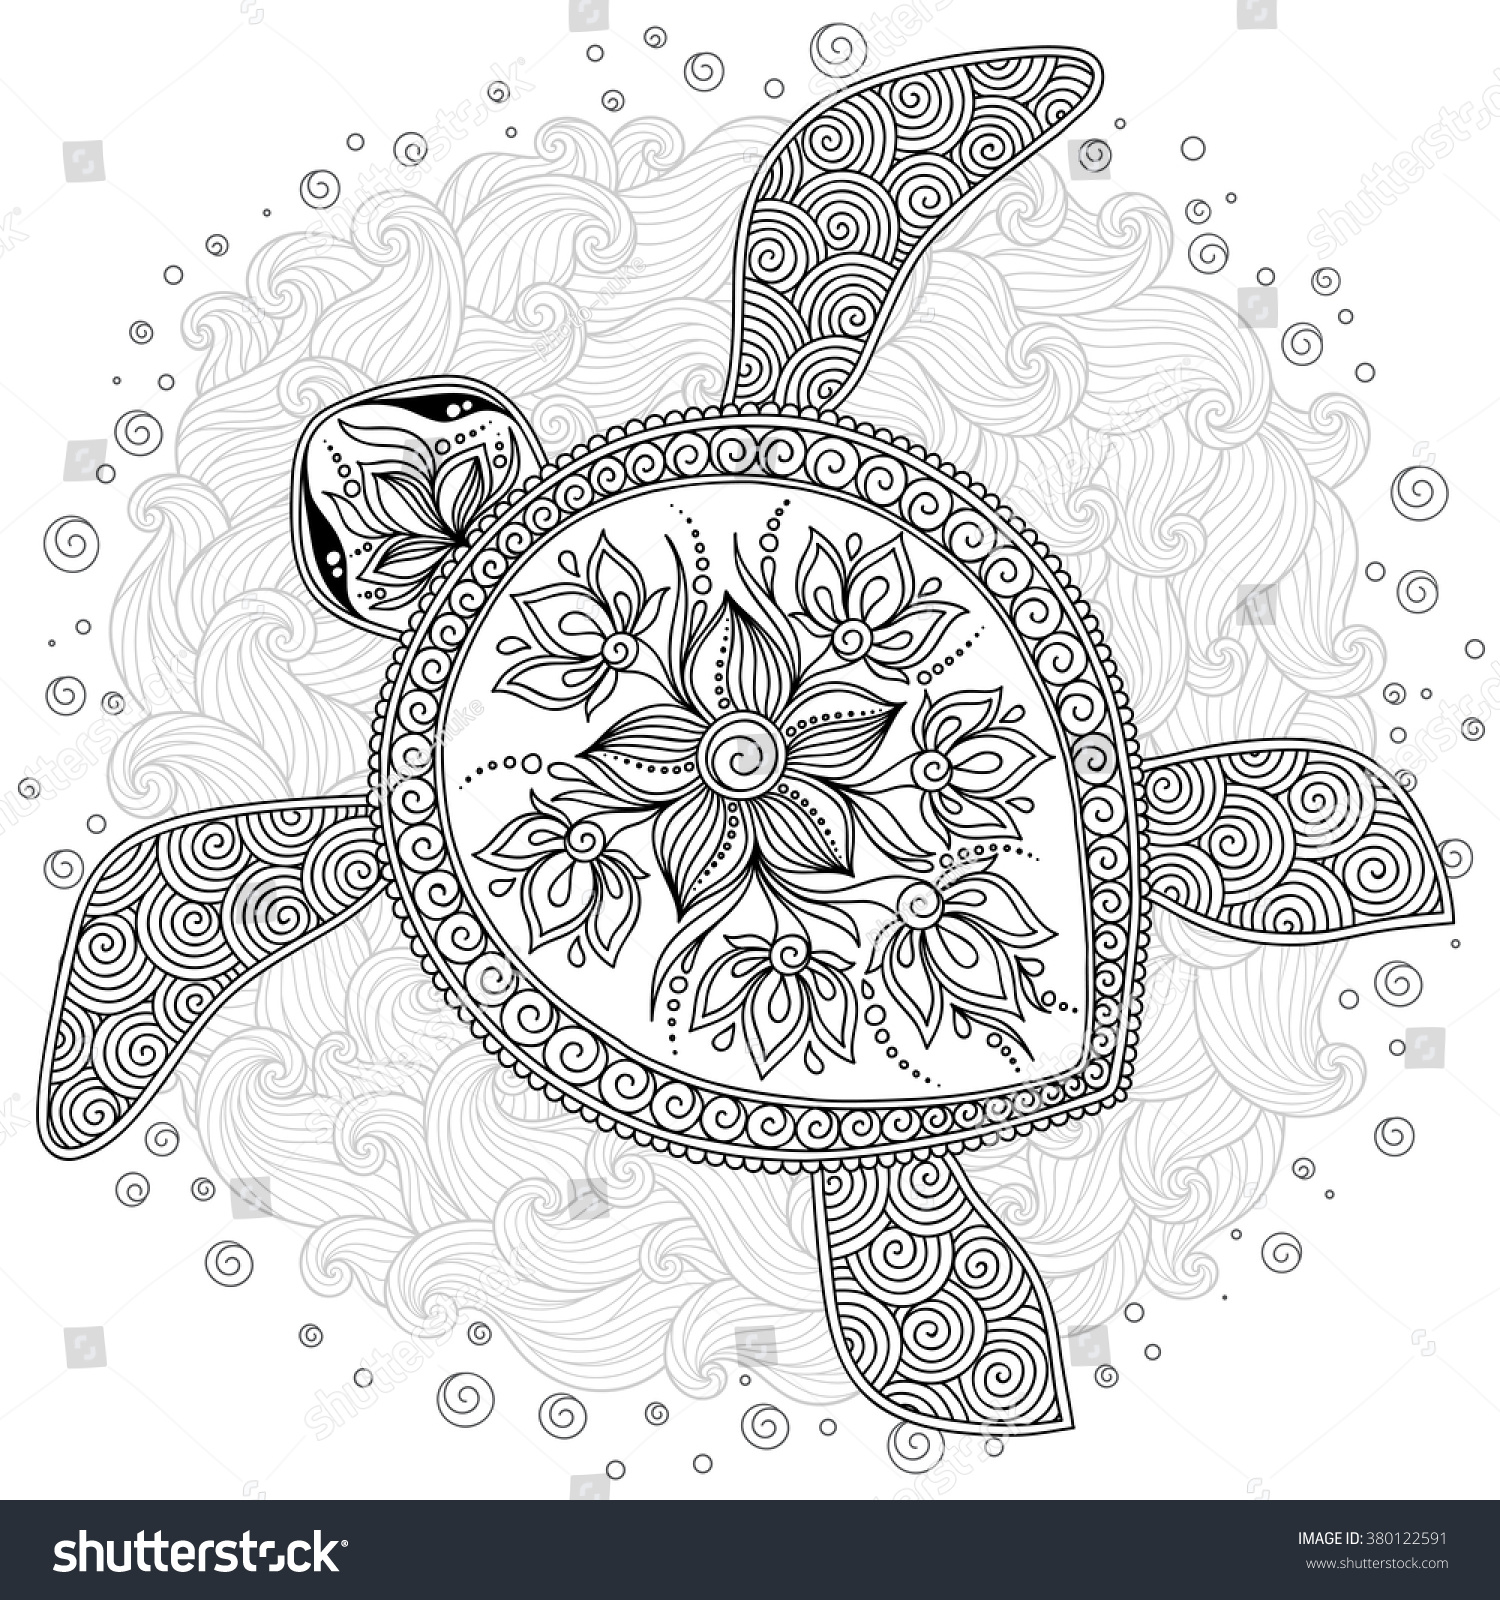 pattern coloring pages for kids - pattern coloring book coloring book pages stock